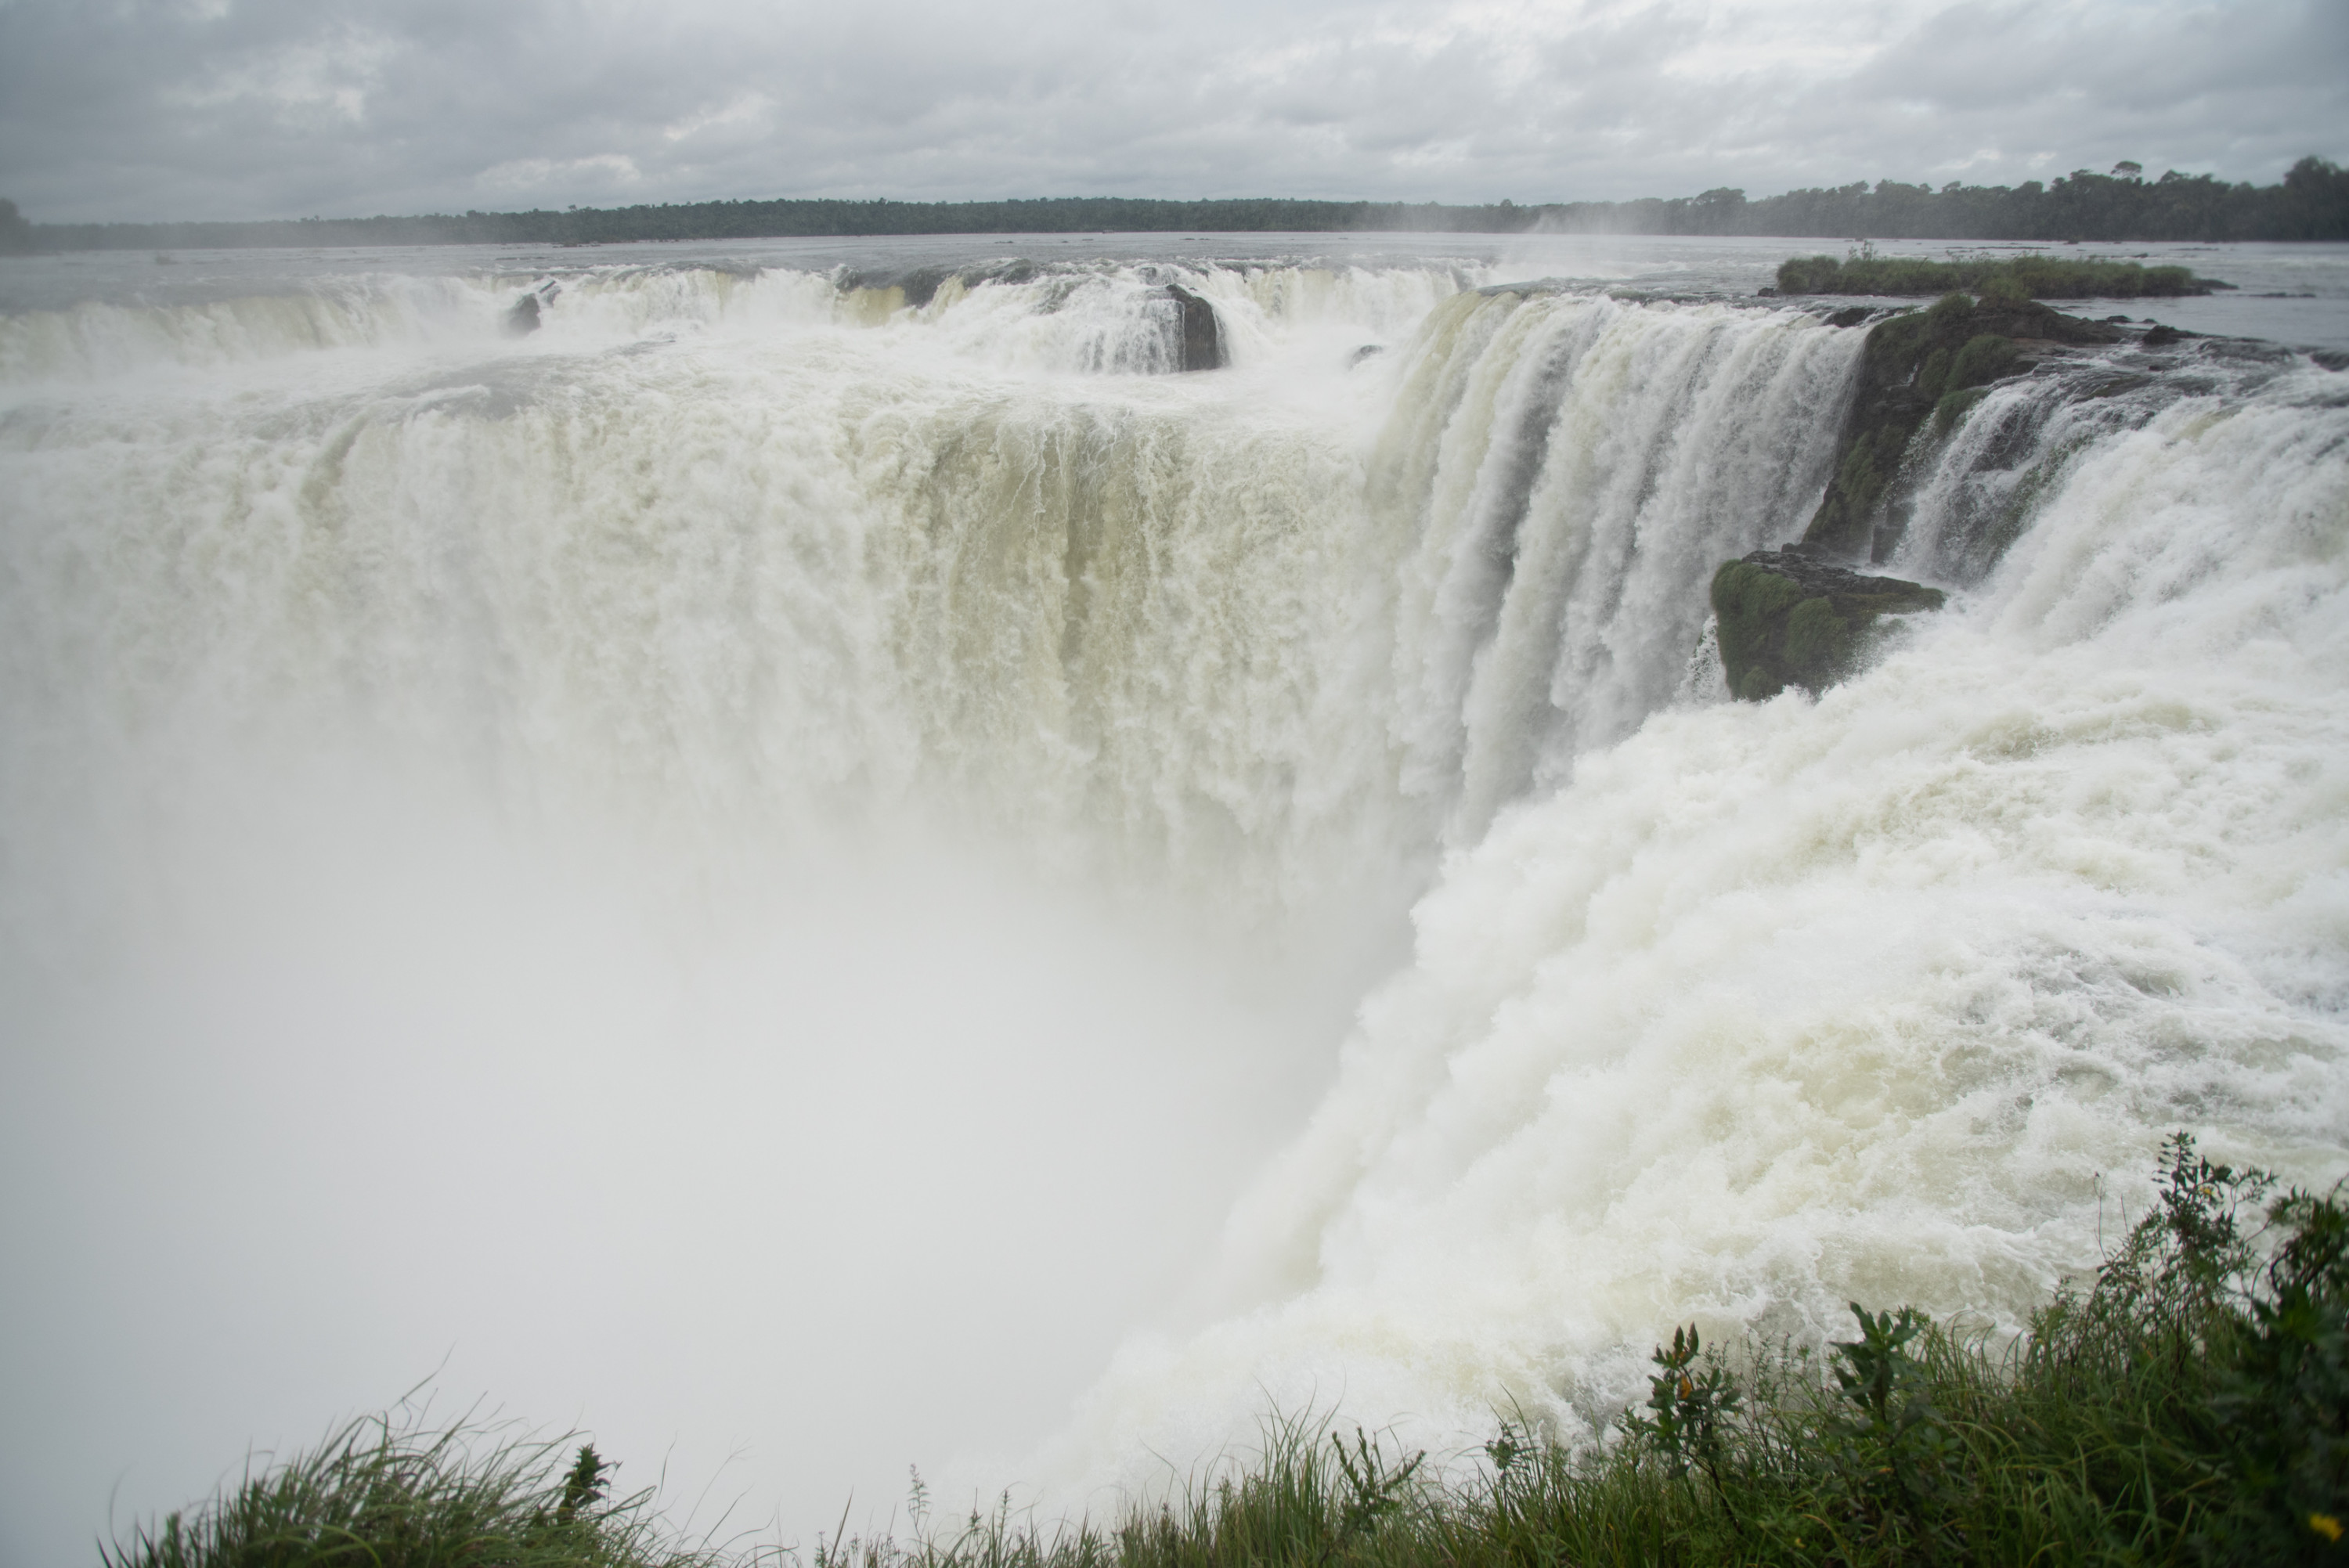 Water rushes down at the Devil's Throat in Iguazú National Park.